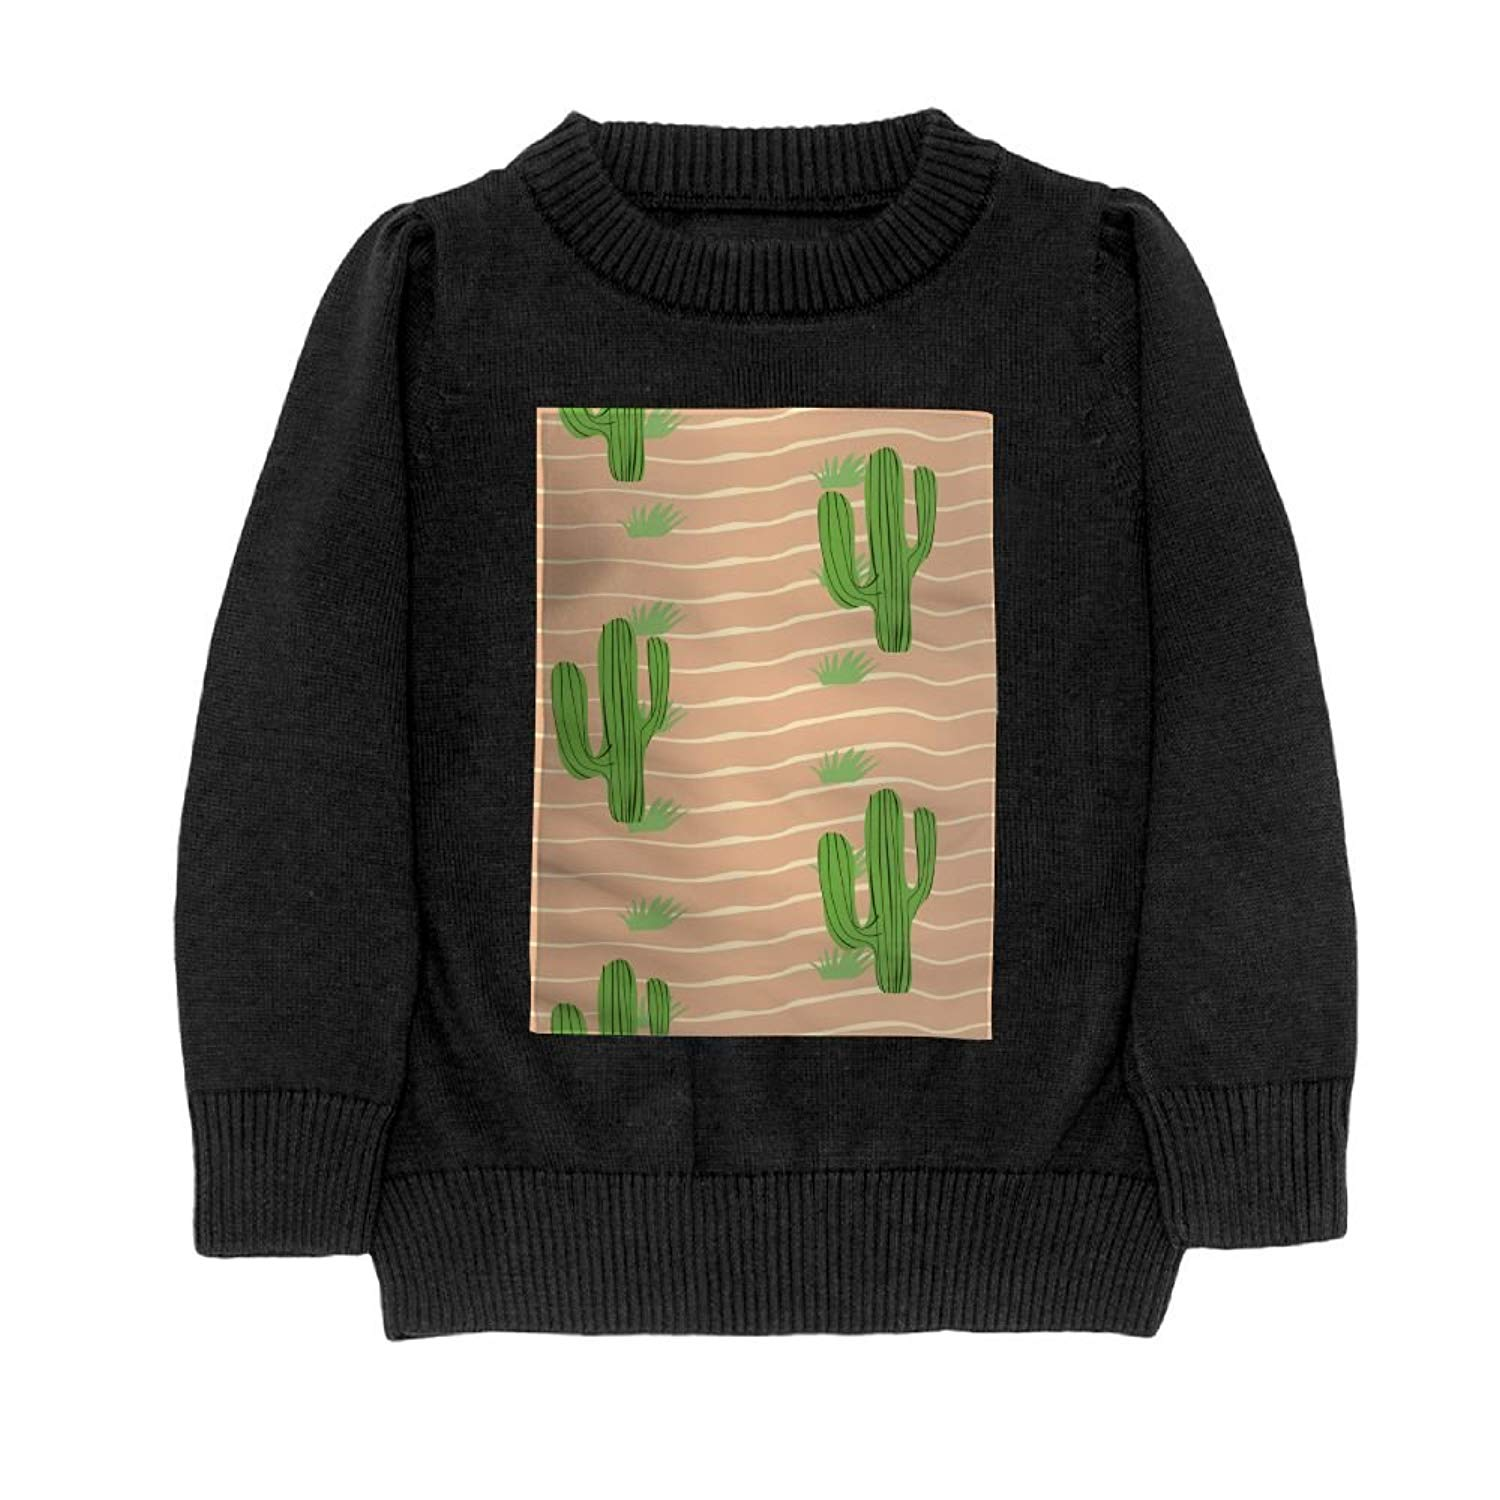 a29e9a5d7700d3 Get Quotations · Hailin Tattoo Girls Cool Fit Knit Sweater Pullover Digital  Printing Green Cactus Patterns Crewneck Adult Sweater